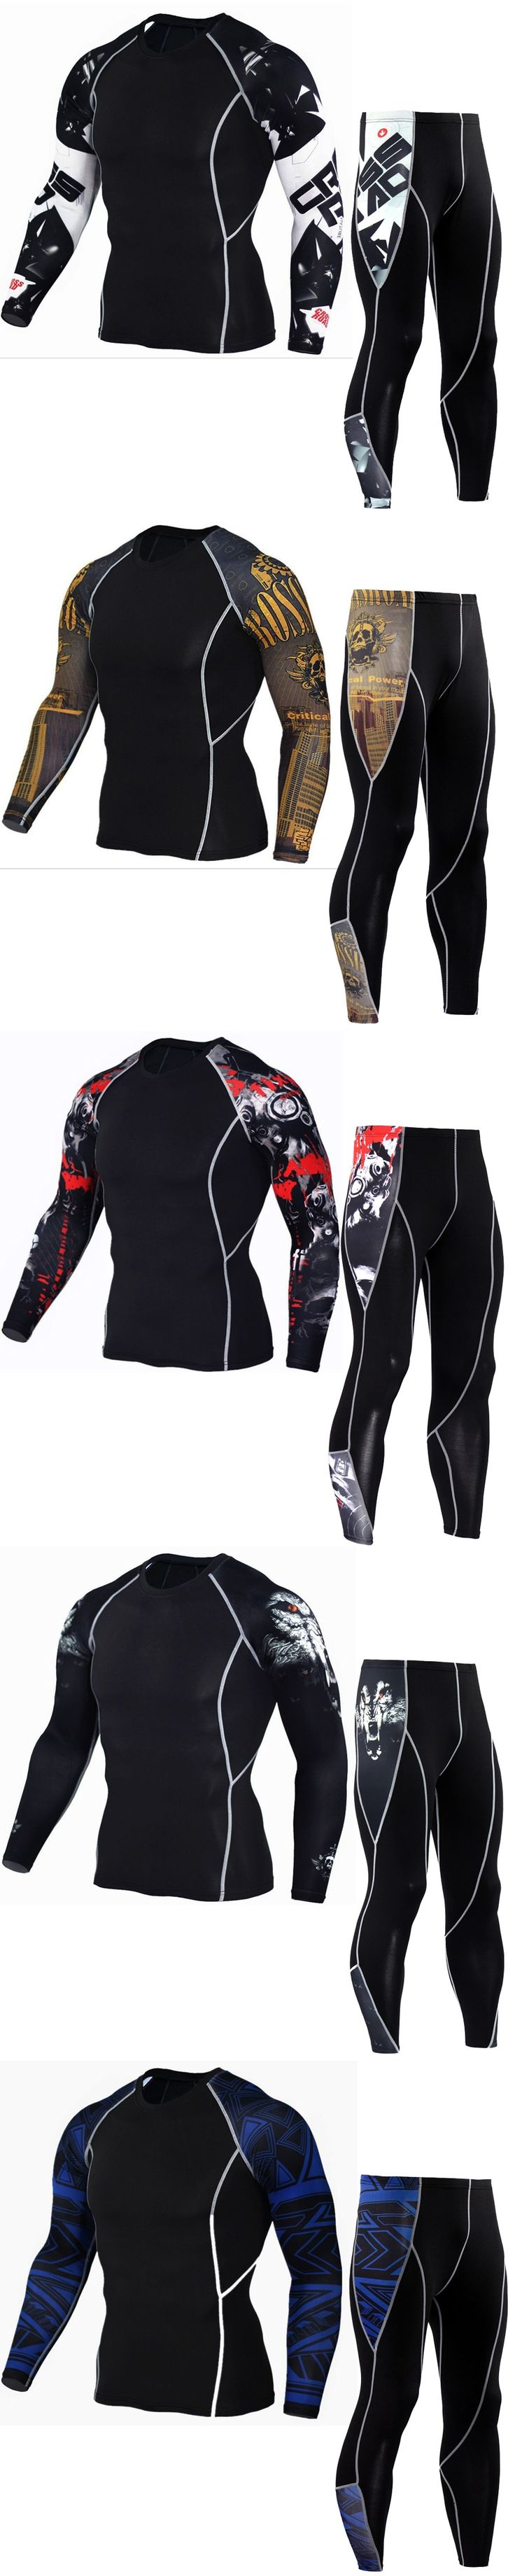 Men's Compression Suits Clothes 3D print Set Long t shirt And Pants Fitness workout Tights clothing 2pcs/Sets dropshipping